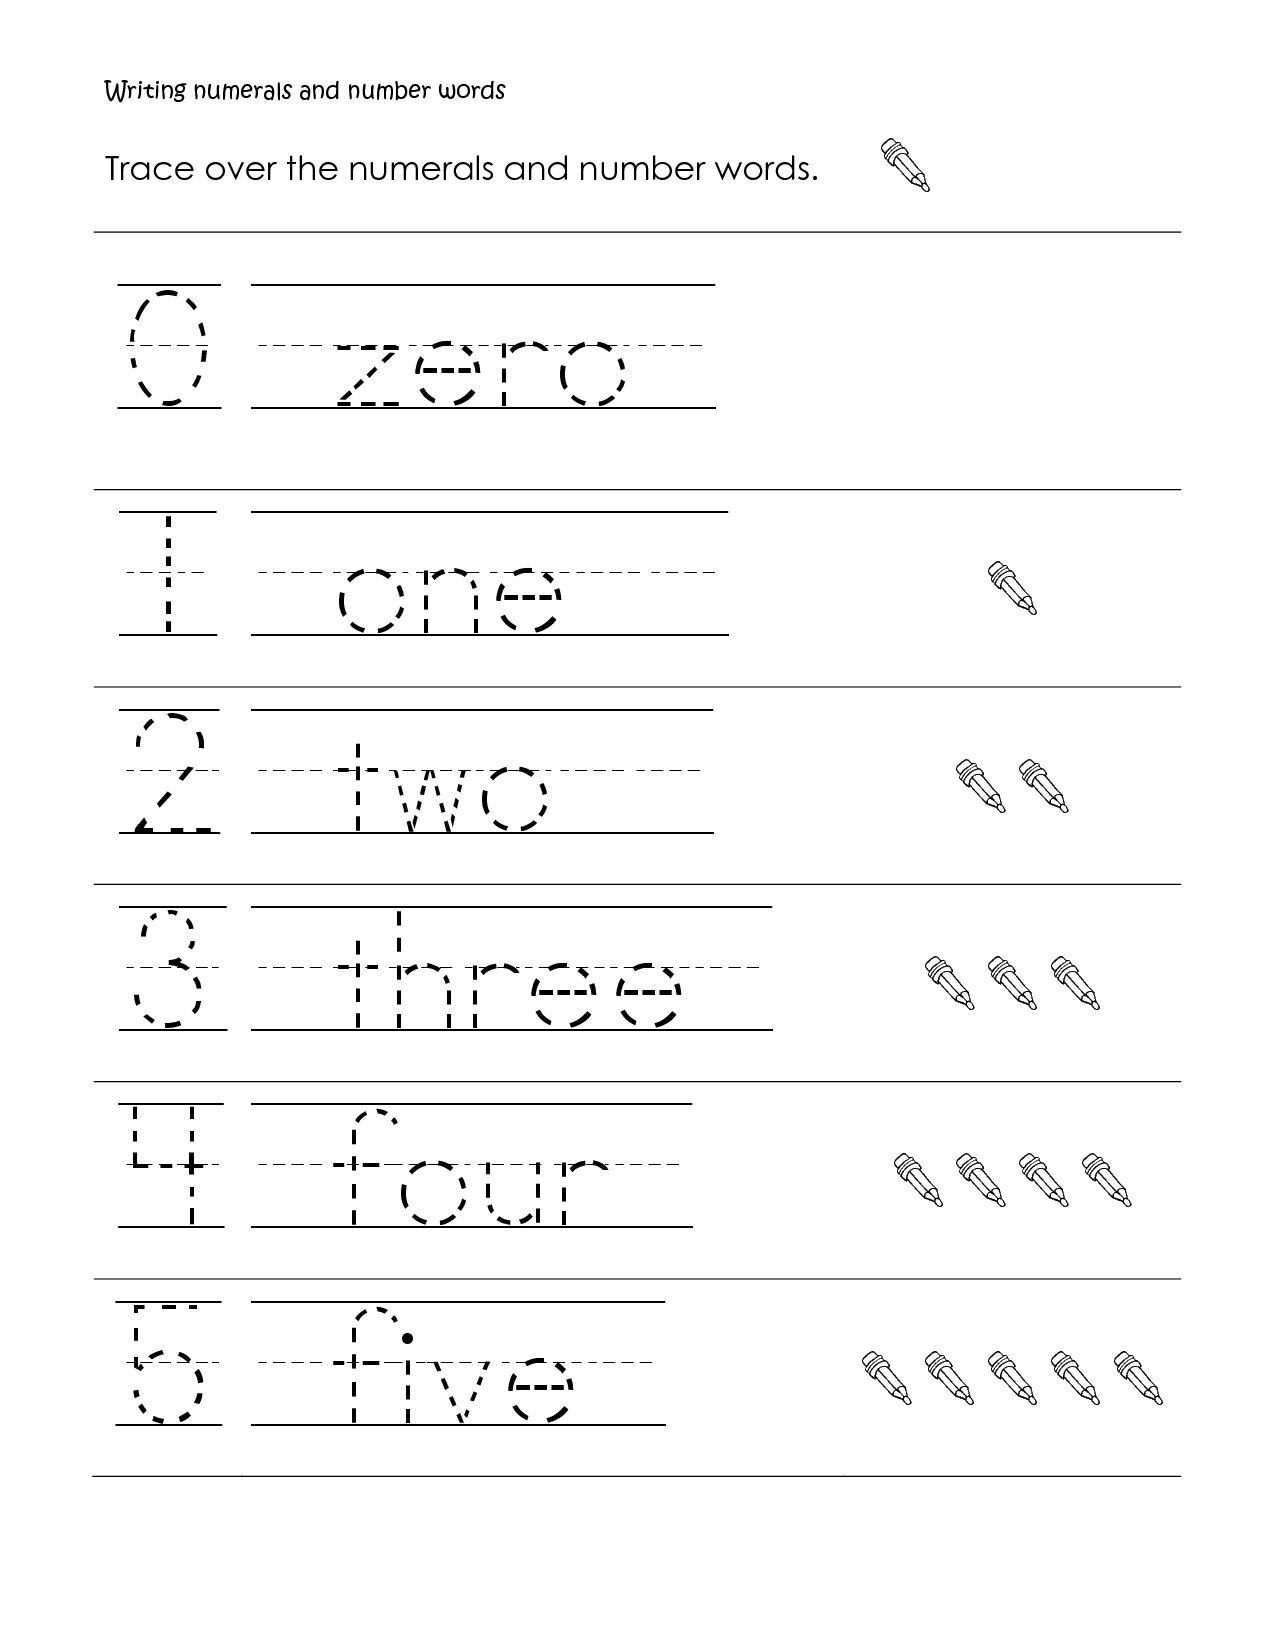 1St Grade Handwriting Practice Sheets Worksheets For All in Letter Tracing 1St Grade